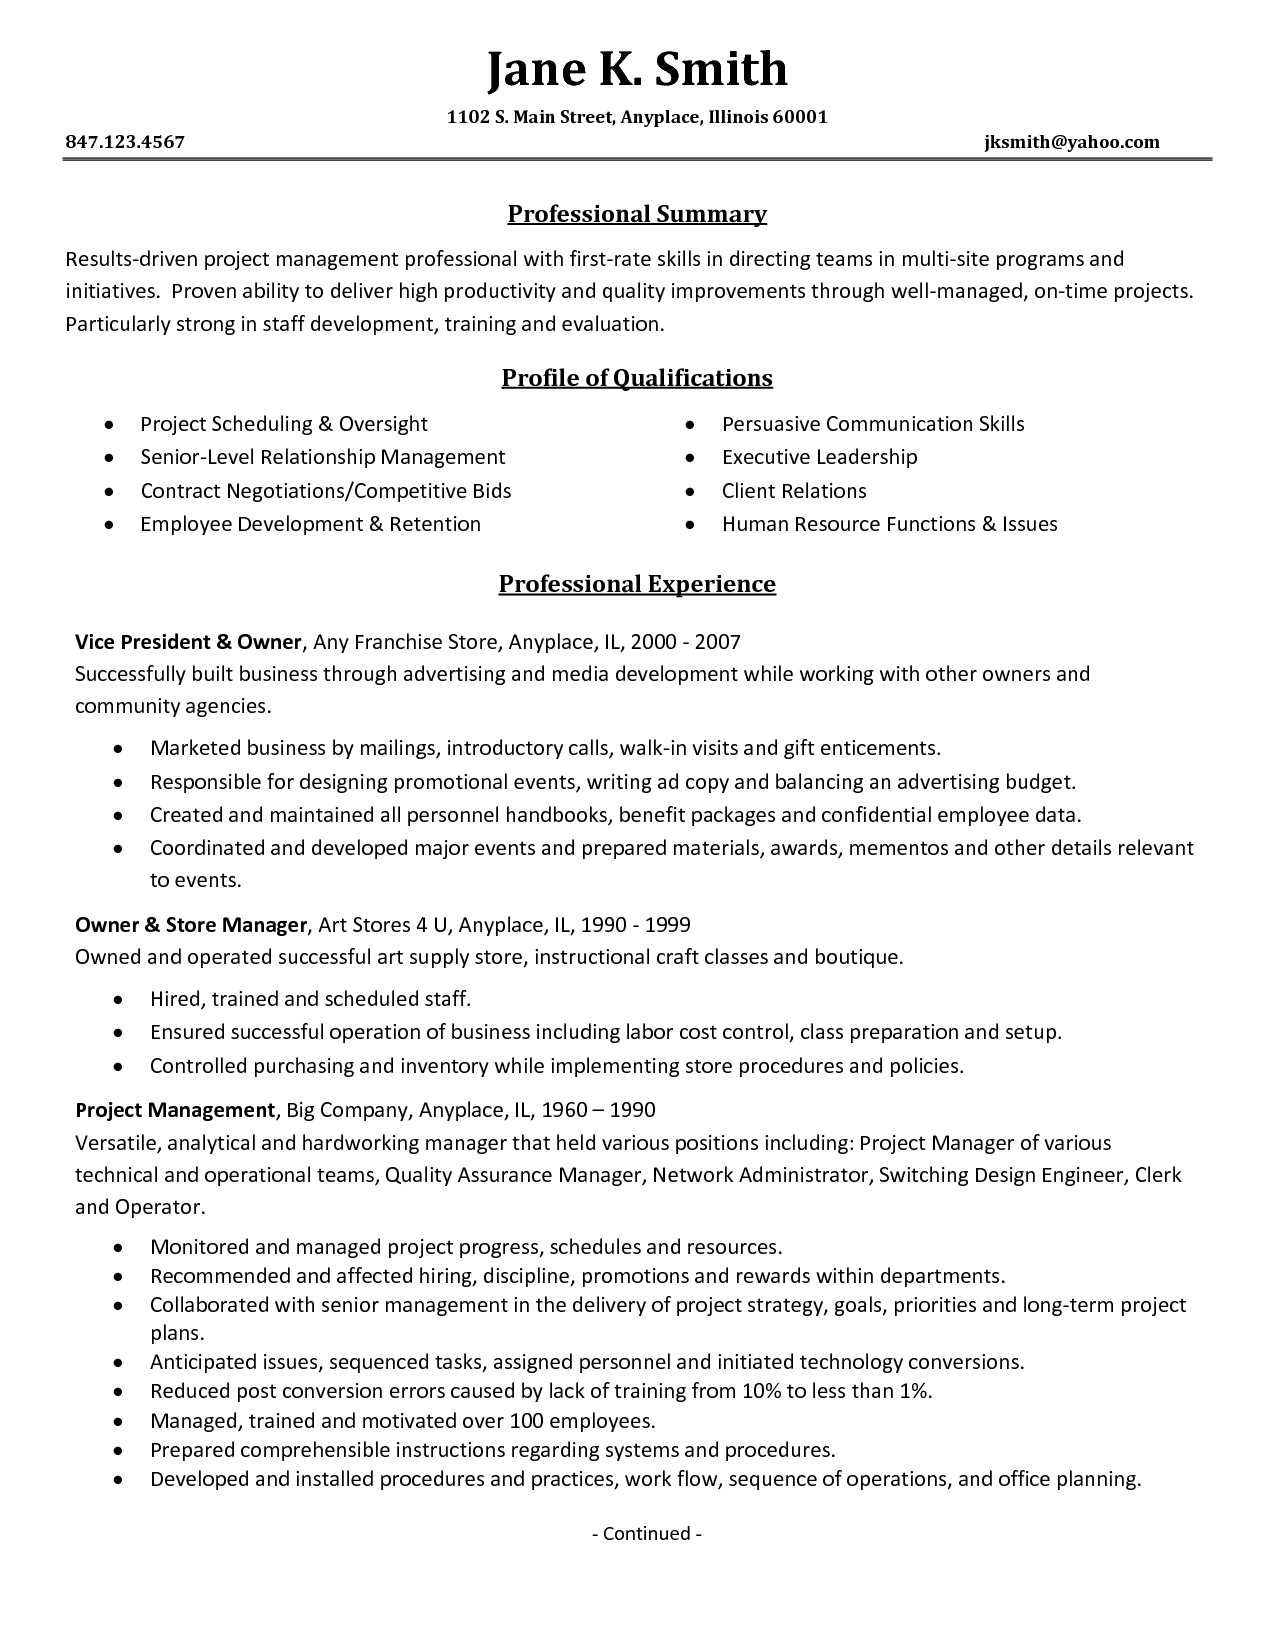 leadership skills resume leadership skills resume template job resume templates